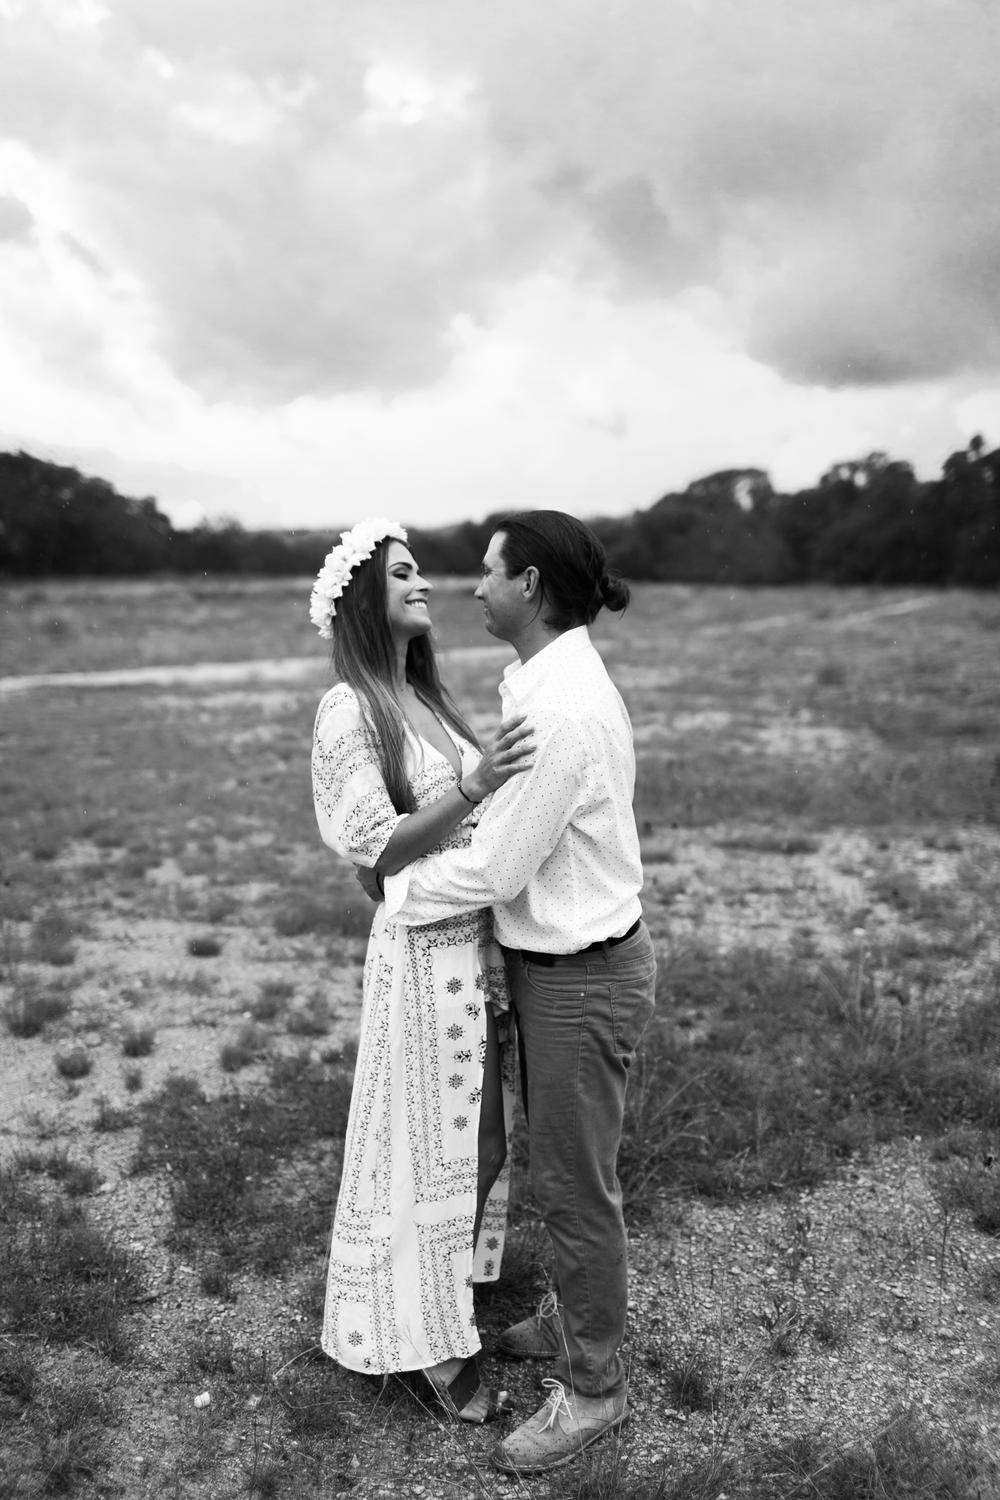 camp-lucy-boho-engagement-session-austin-texas-wedding-photographer-035.jpg